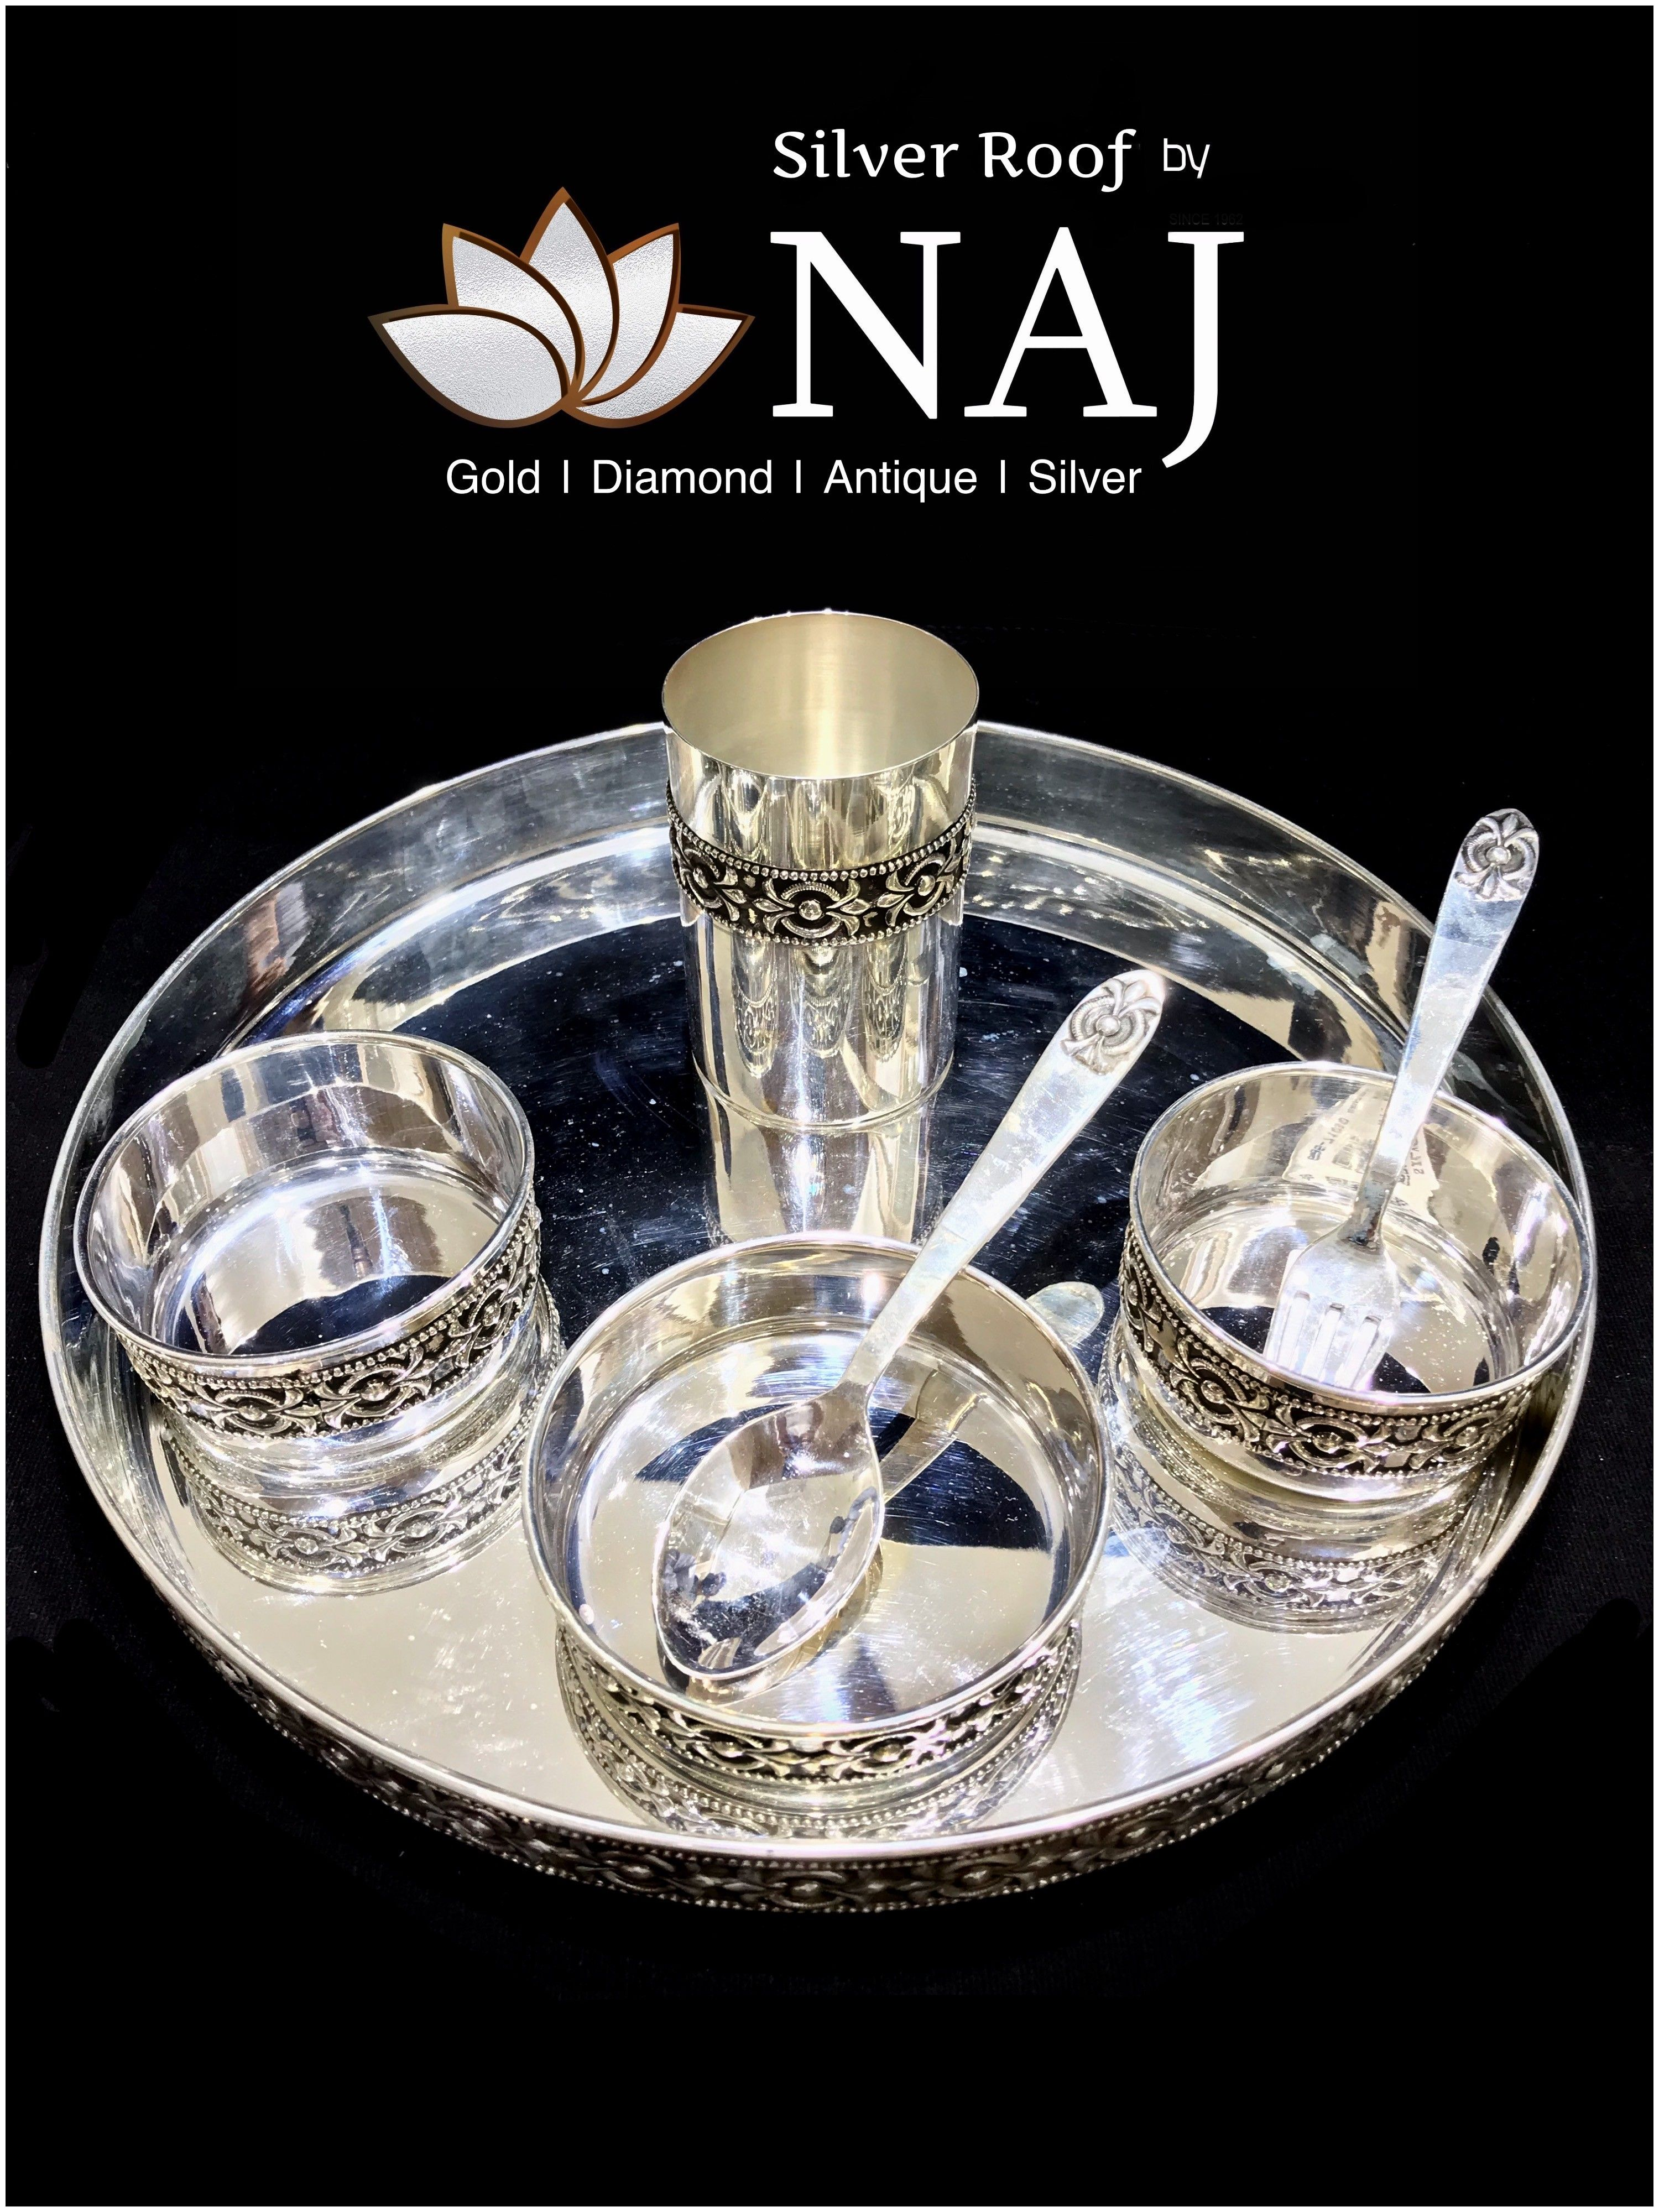 Pure Silver Dinner Set For Wedding Gifts Or Regular Use Antique Silver Dinner Set Available In All Sizes Only Silver In 2020 Silver Antique Silver Silver Trays